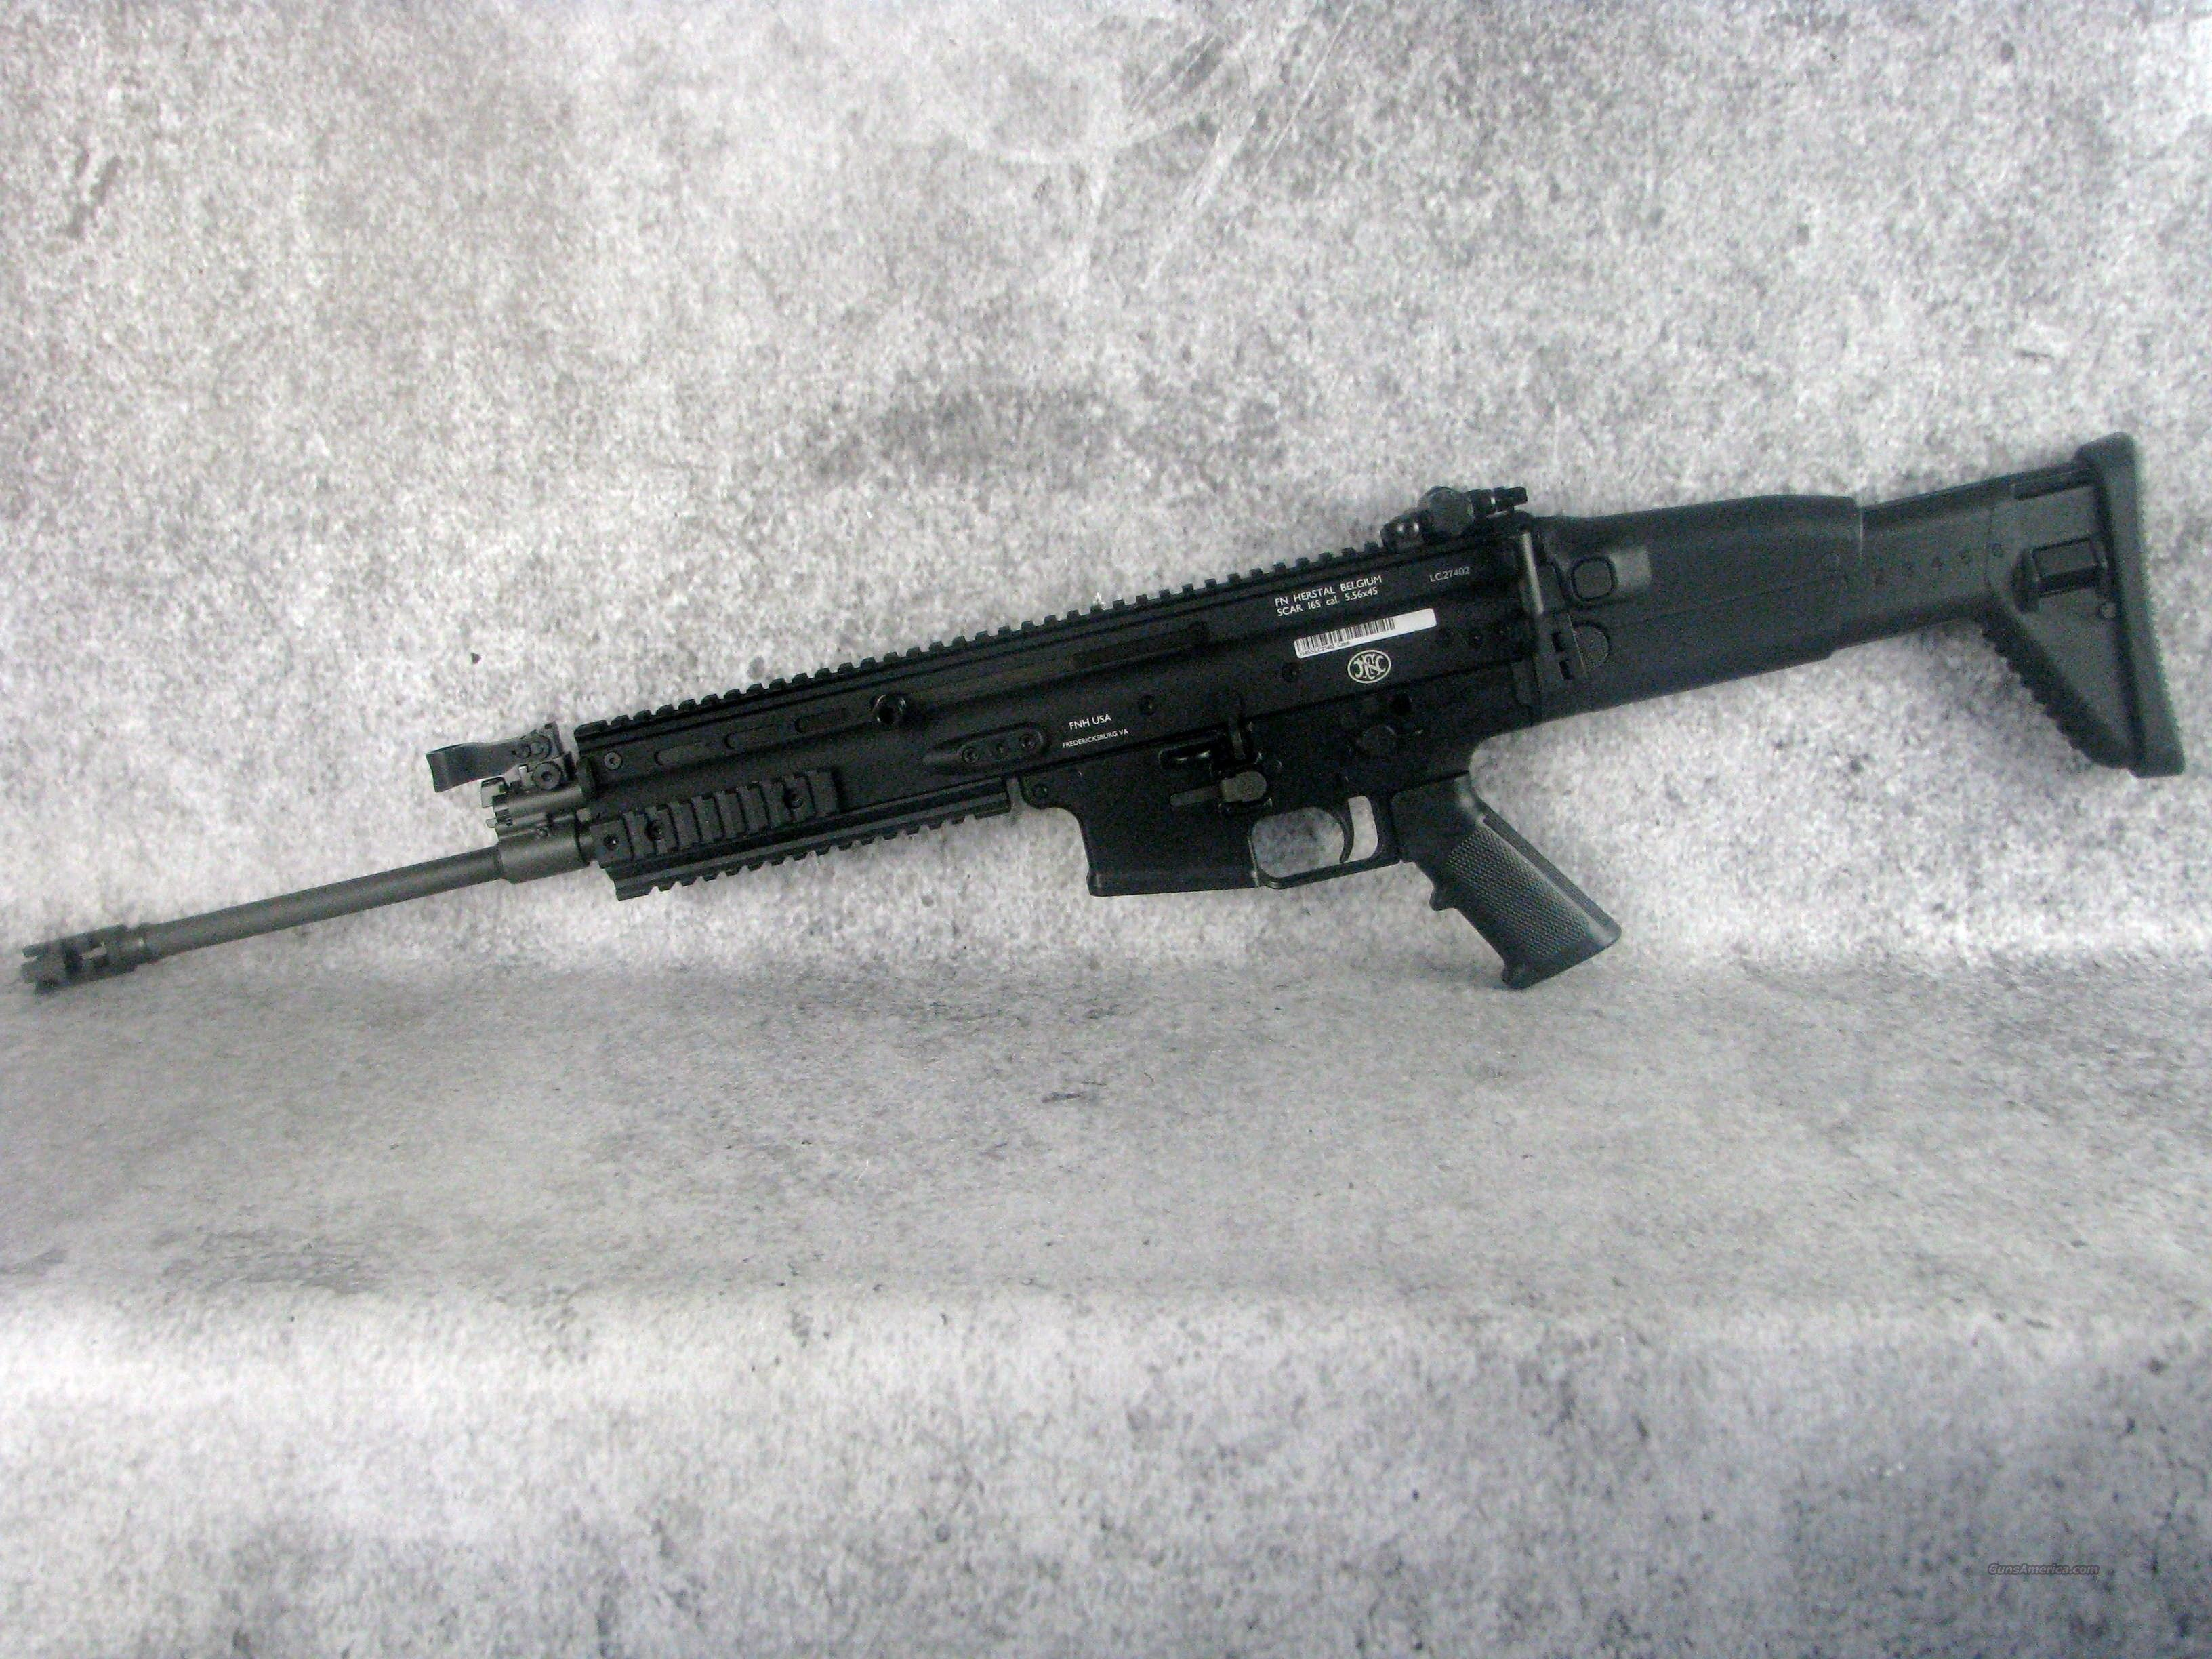 FNH SCAR 16s  5.56 223 98521 /EASY PAY $224 Monthly Guns > Pistols > FNH - Fabrique Nationale (FN) Rifles > Semi-auto > SCAR